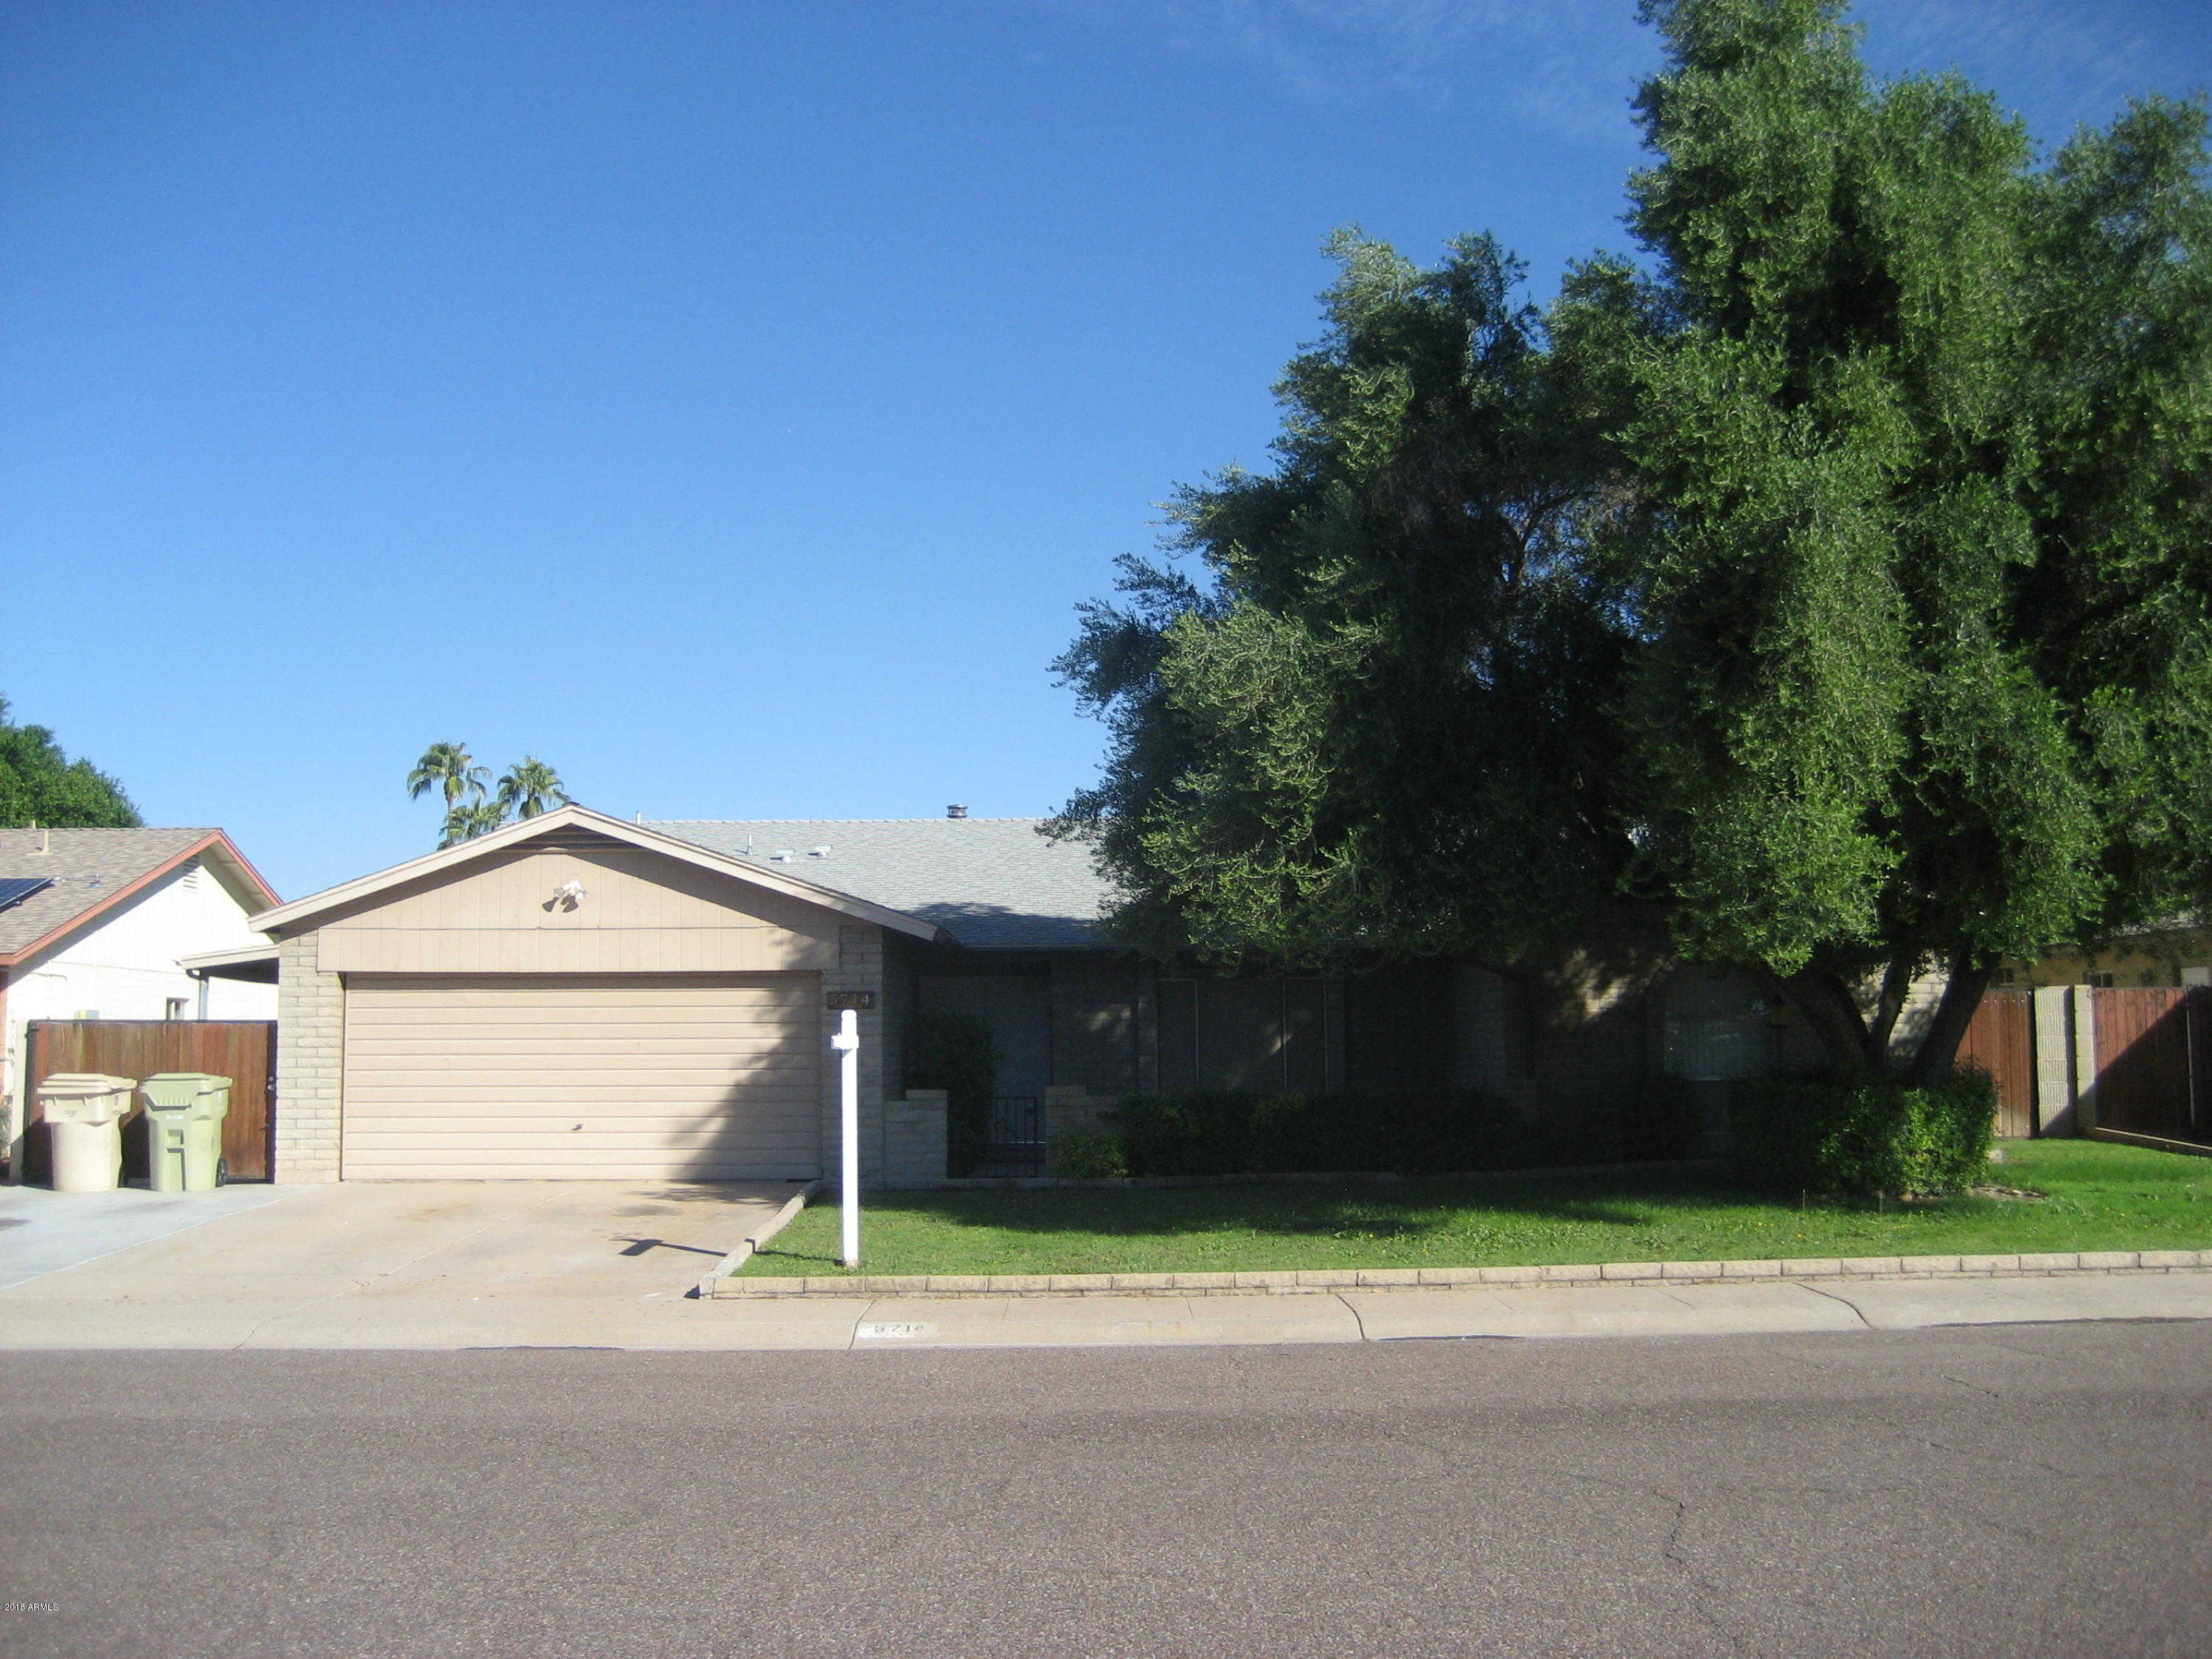 $320,000 - 4Br/2Ba - Home for Sale in Royal Estates West 4 Lot 123-244, Glendale